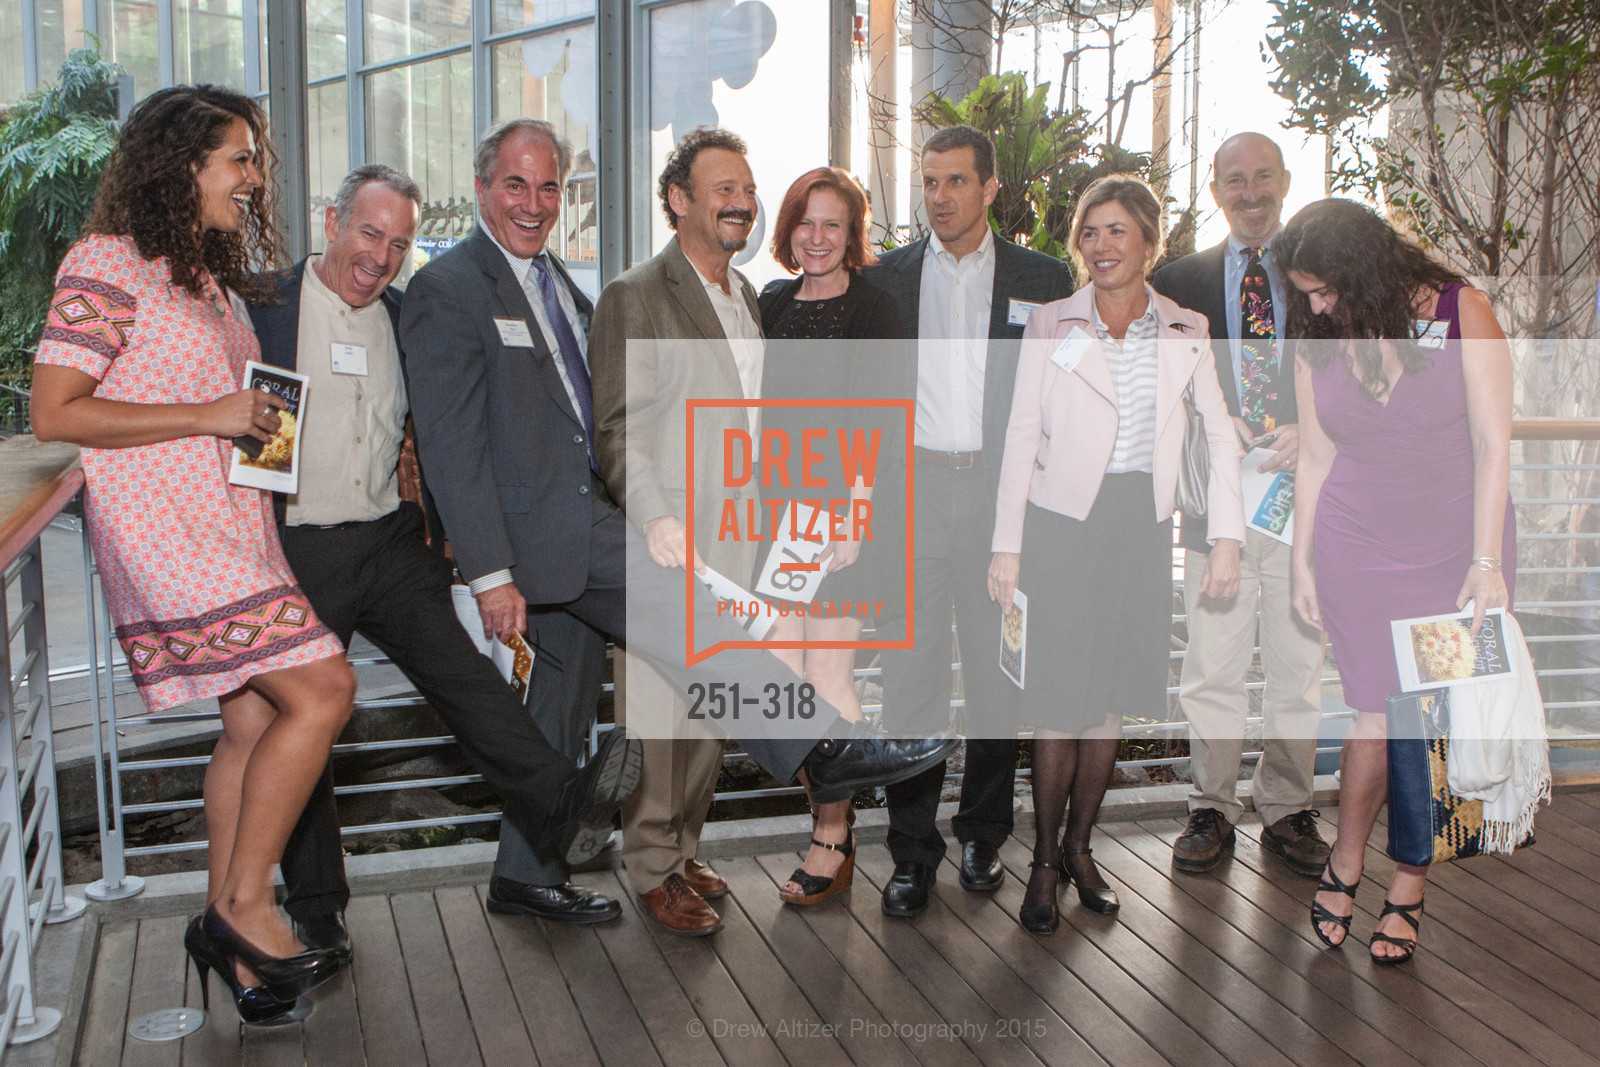 Pamela Ortega, Gary Lucks, Bradley Mart, Jeff Chanin, Susan Schuster, Dirk Rosen, Jennifer Myton, Coral Reef Alliance at the California Academy of Sciences, Academy of Sciences, September 26th, 2015,Drew Altizer, Drew Altizer Photography, full-service agency, private events, San Francisco photographer, photographer california